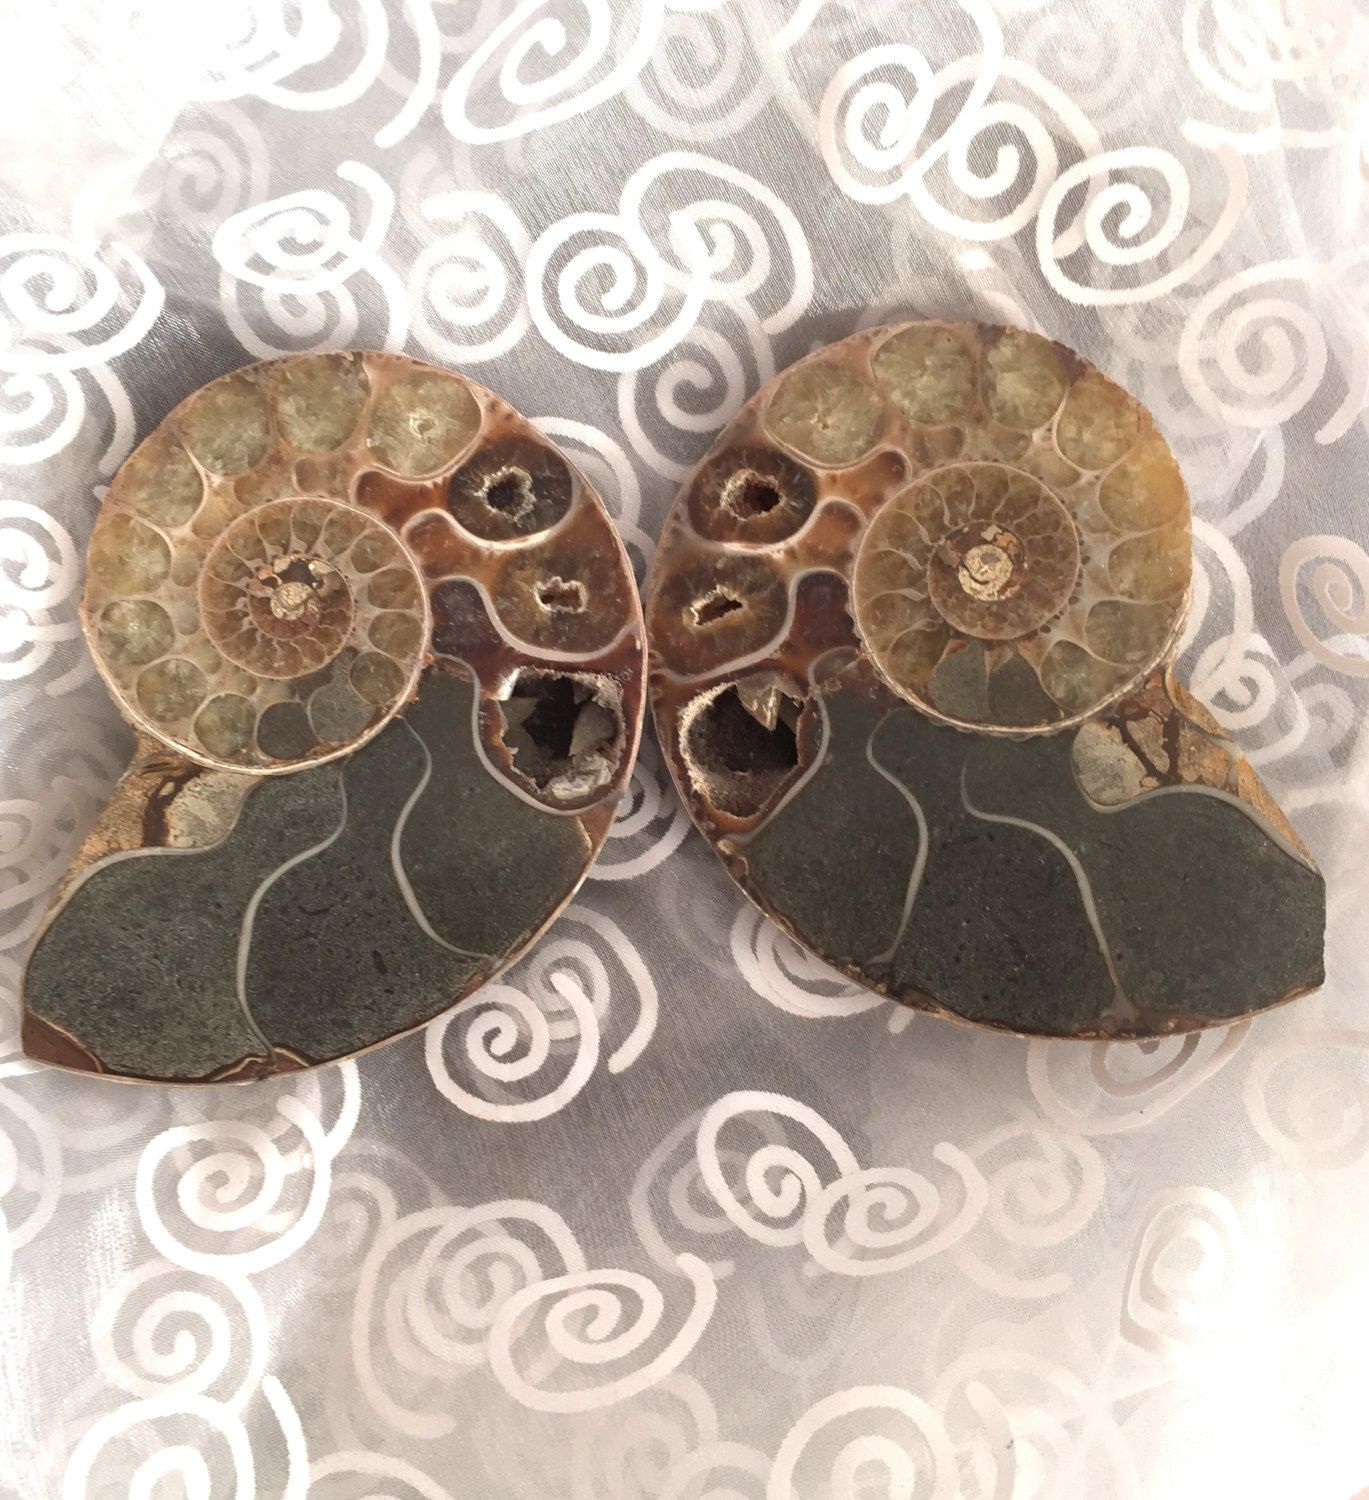 Ammonite! Ammonite Fossil Specimen! Thick Pair of Beautiful Ammonite Slices with Crystals inside! Ammonite for a Positive Flowing Spiral! by shspirithouse on Etsy